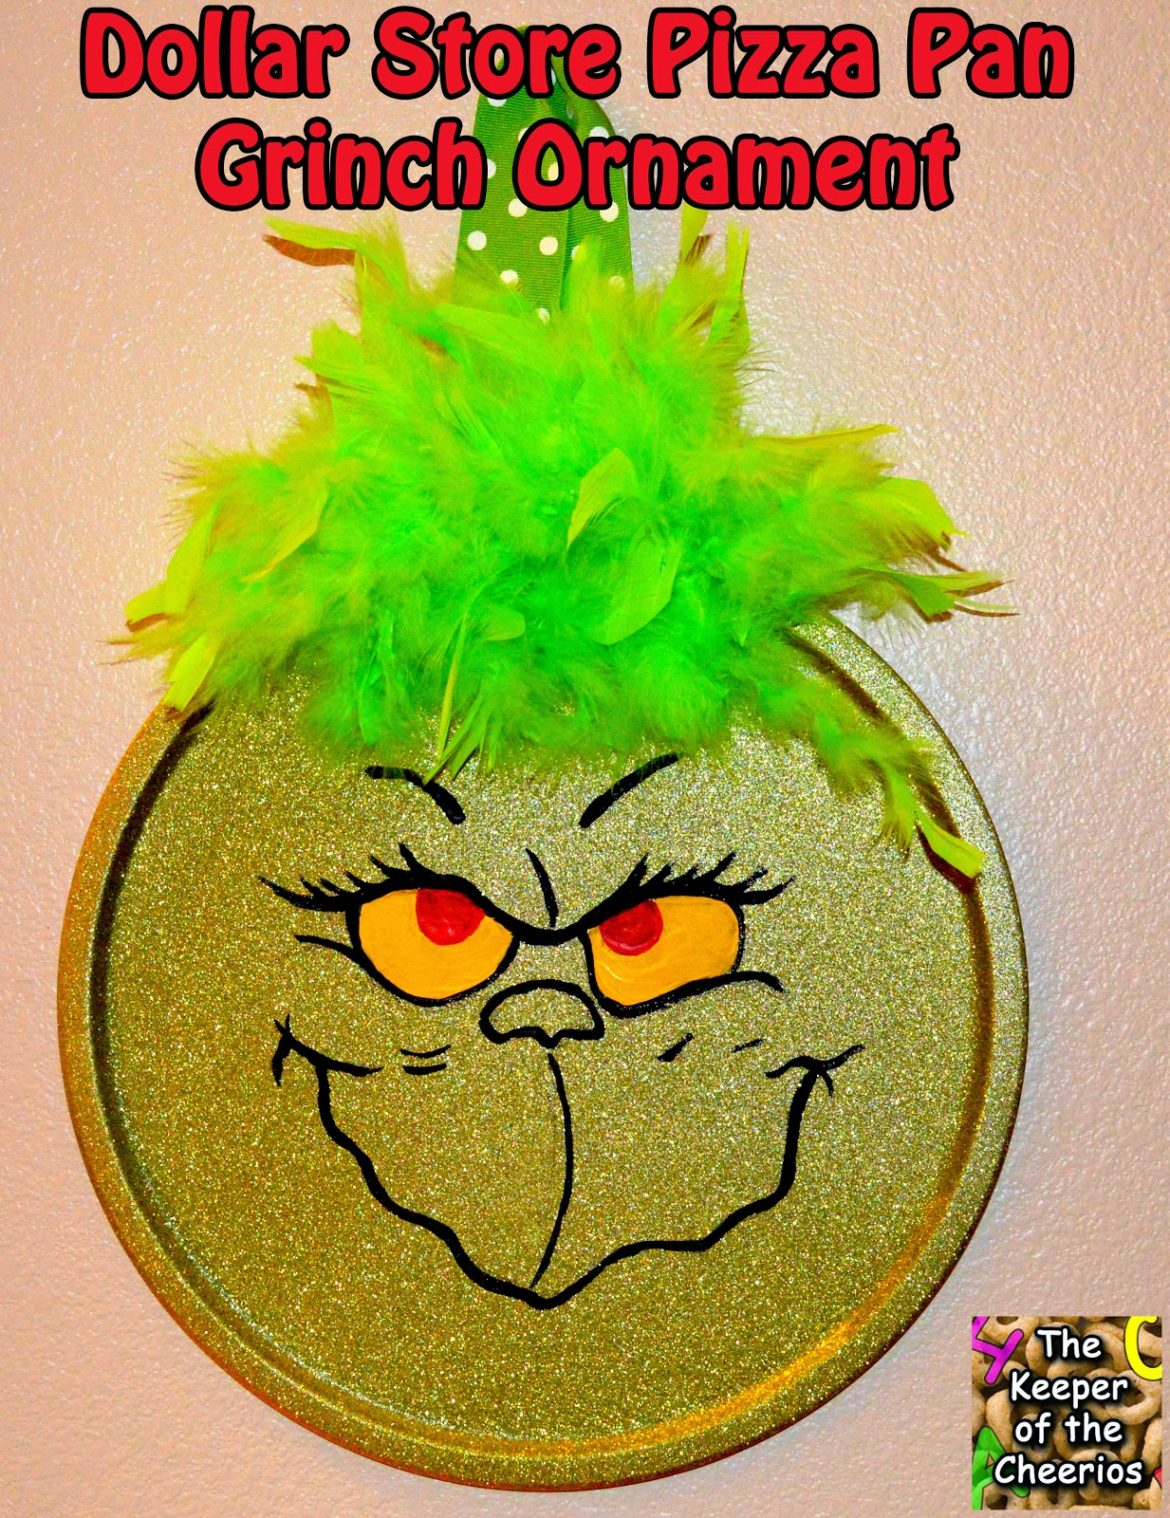 Dollar Store Pizza Pan Grinch Ornament The Keeper Of The Cheerios